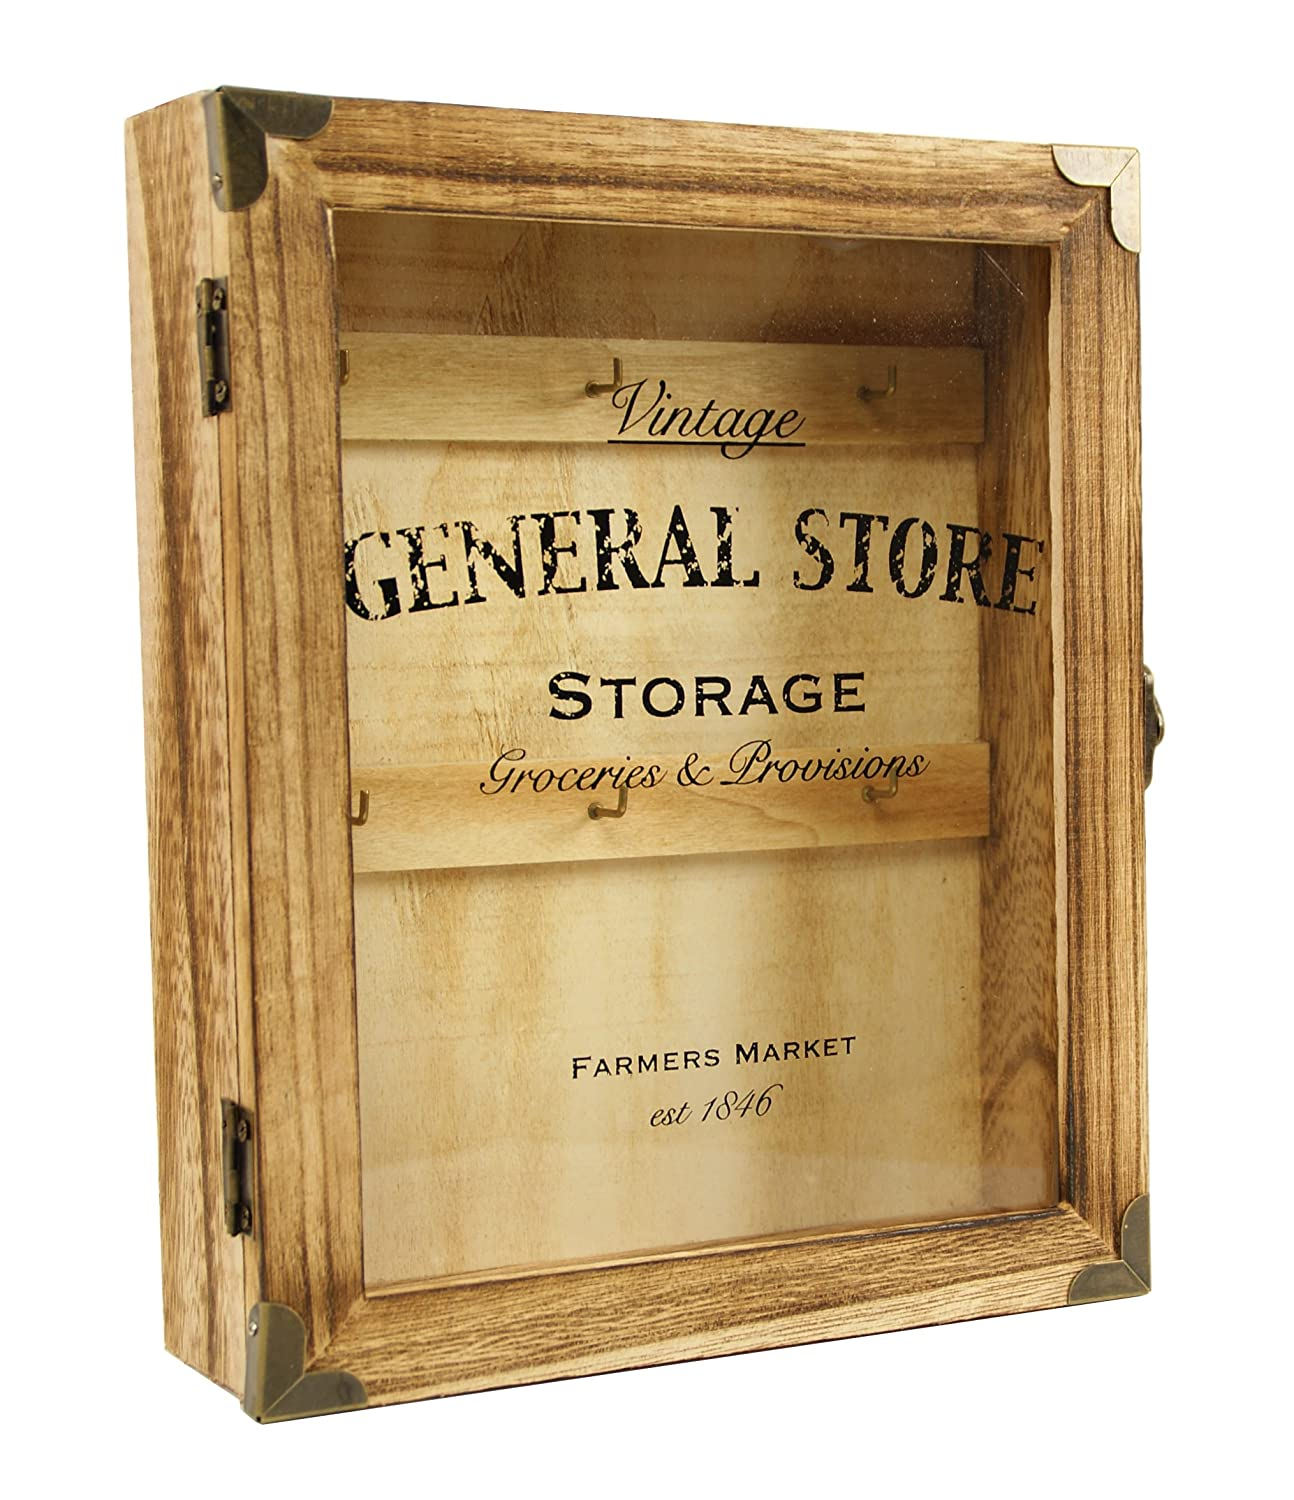 Vintage Style Wooden Key Box Cabinet Wall Hanging Or Free Standing ...